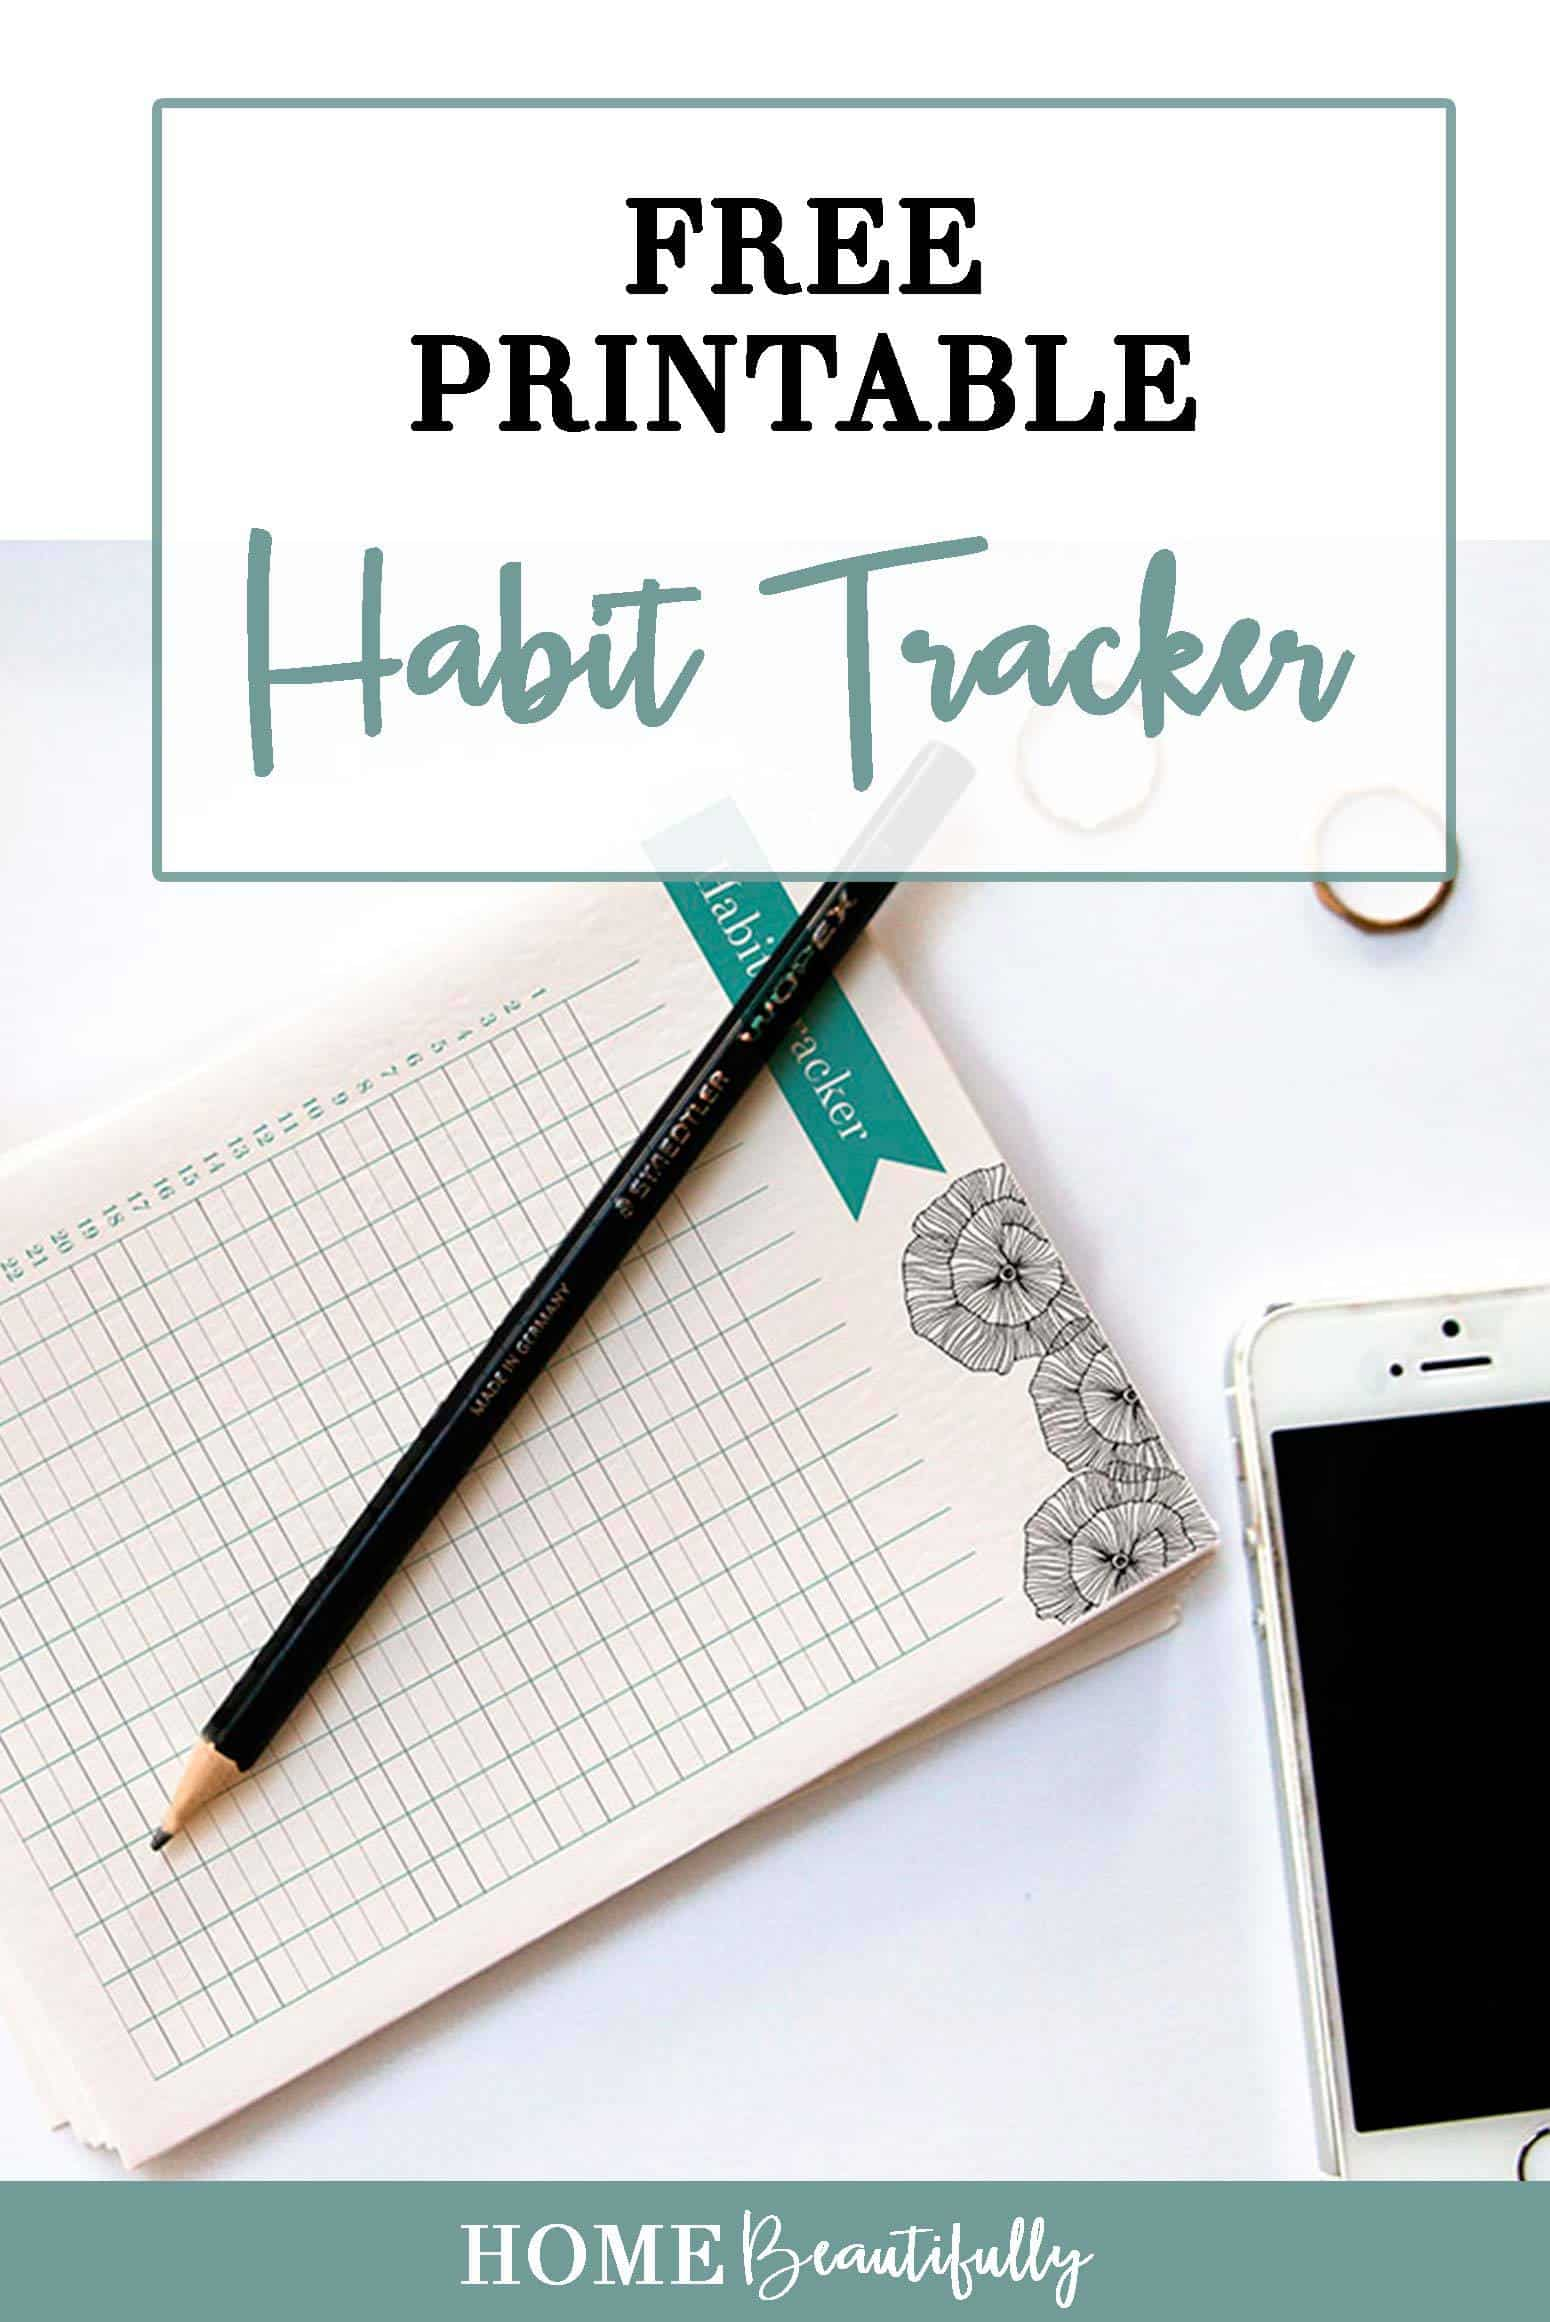 Printable habit tracker journal with pencil on a white background